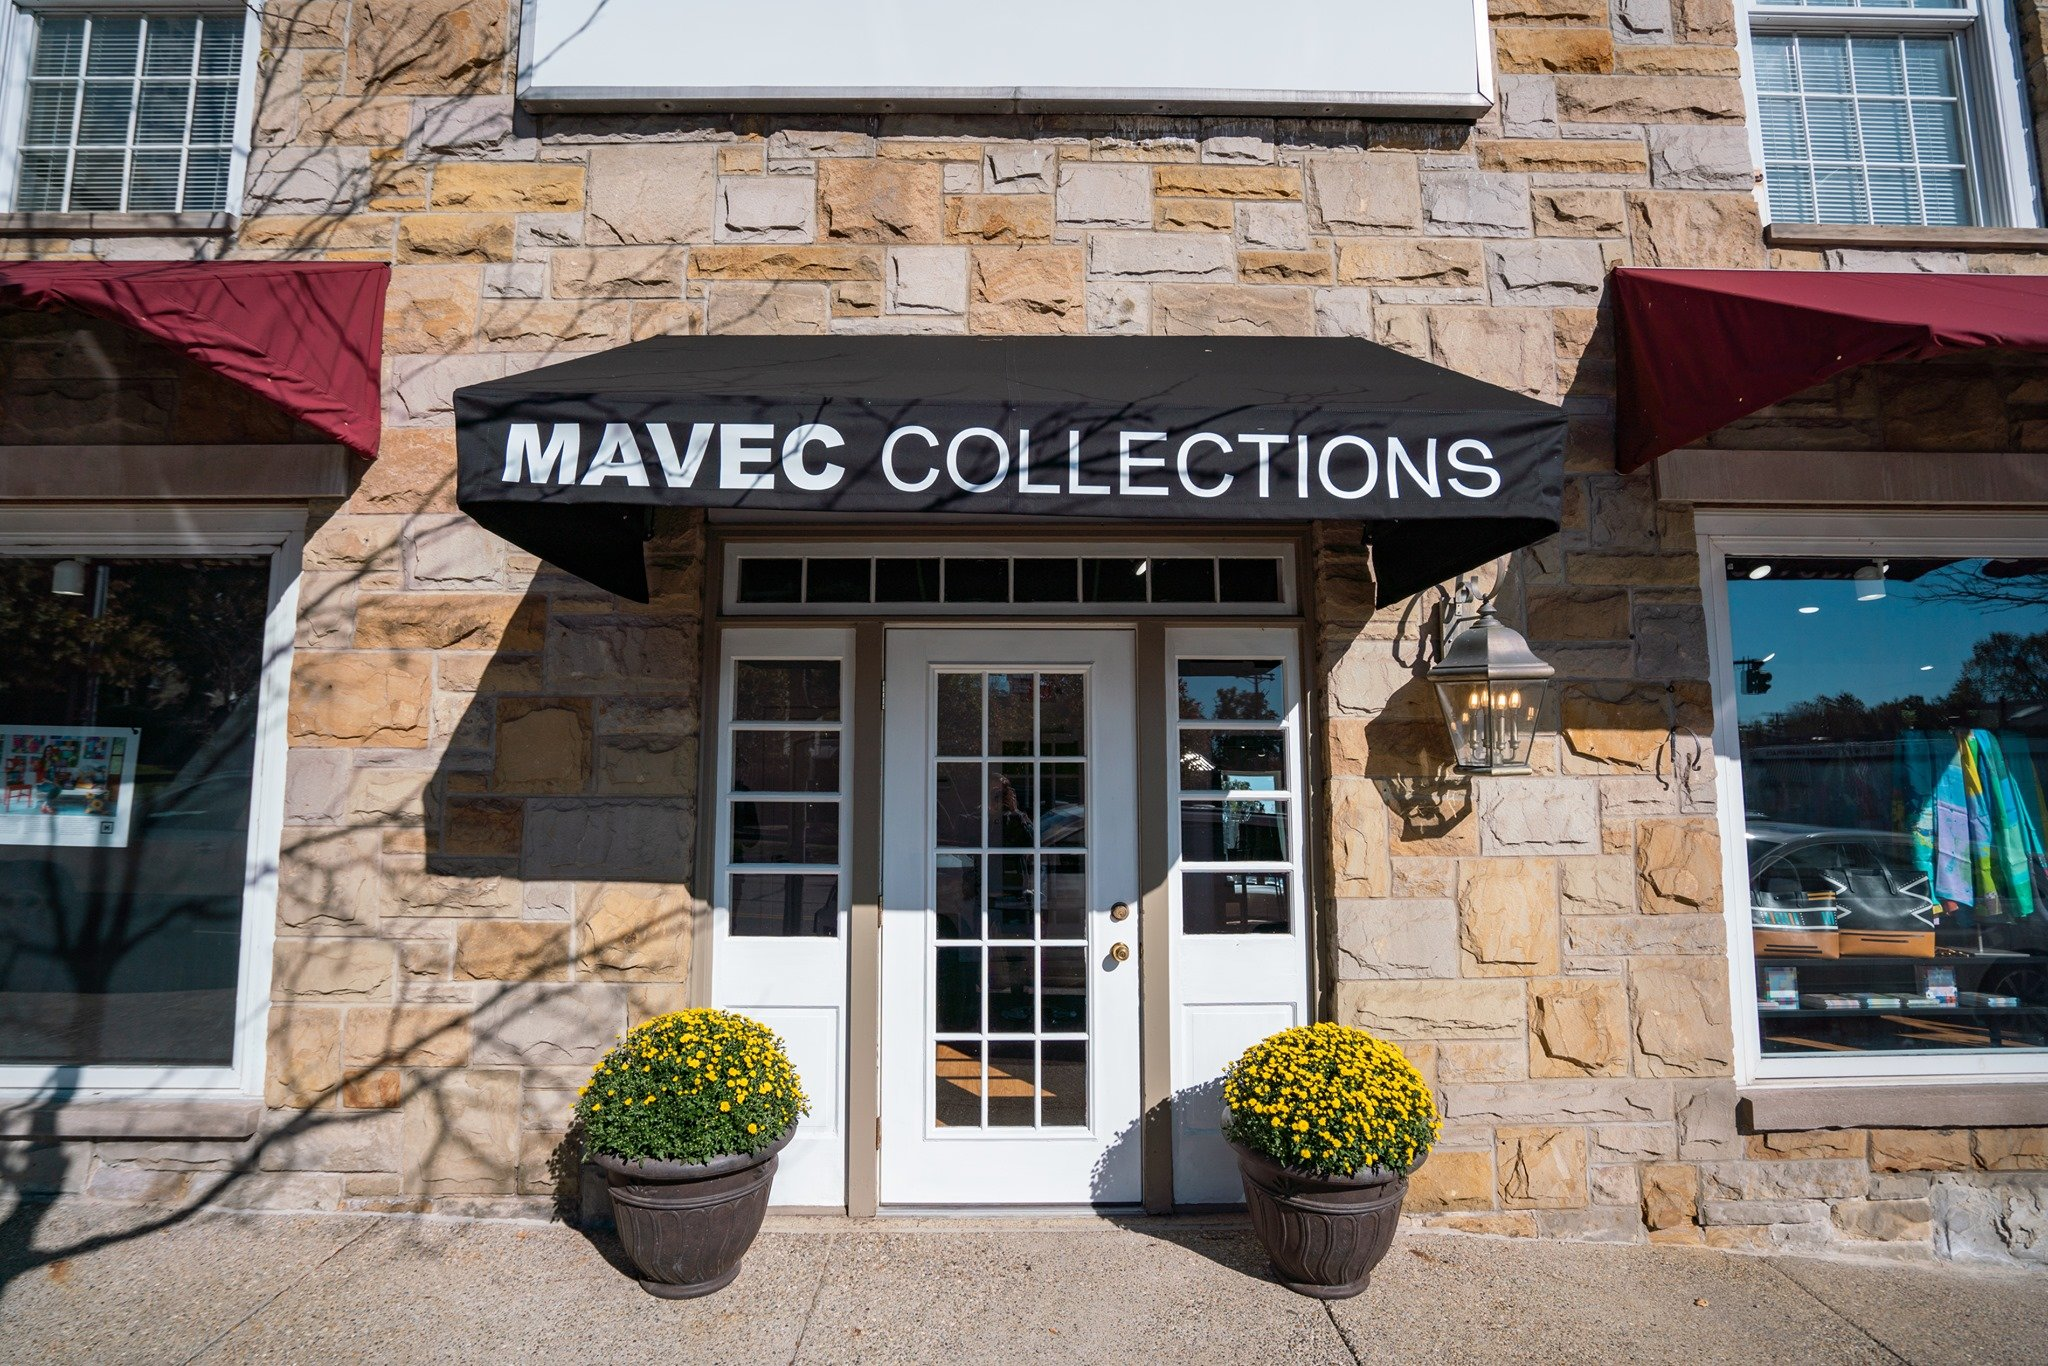 Mavec Collections